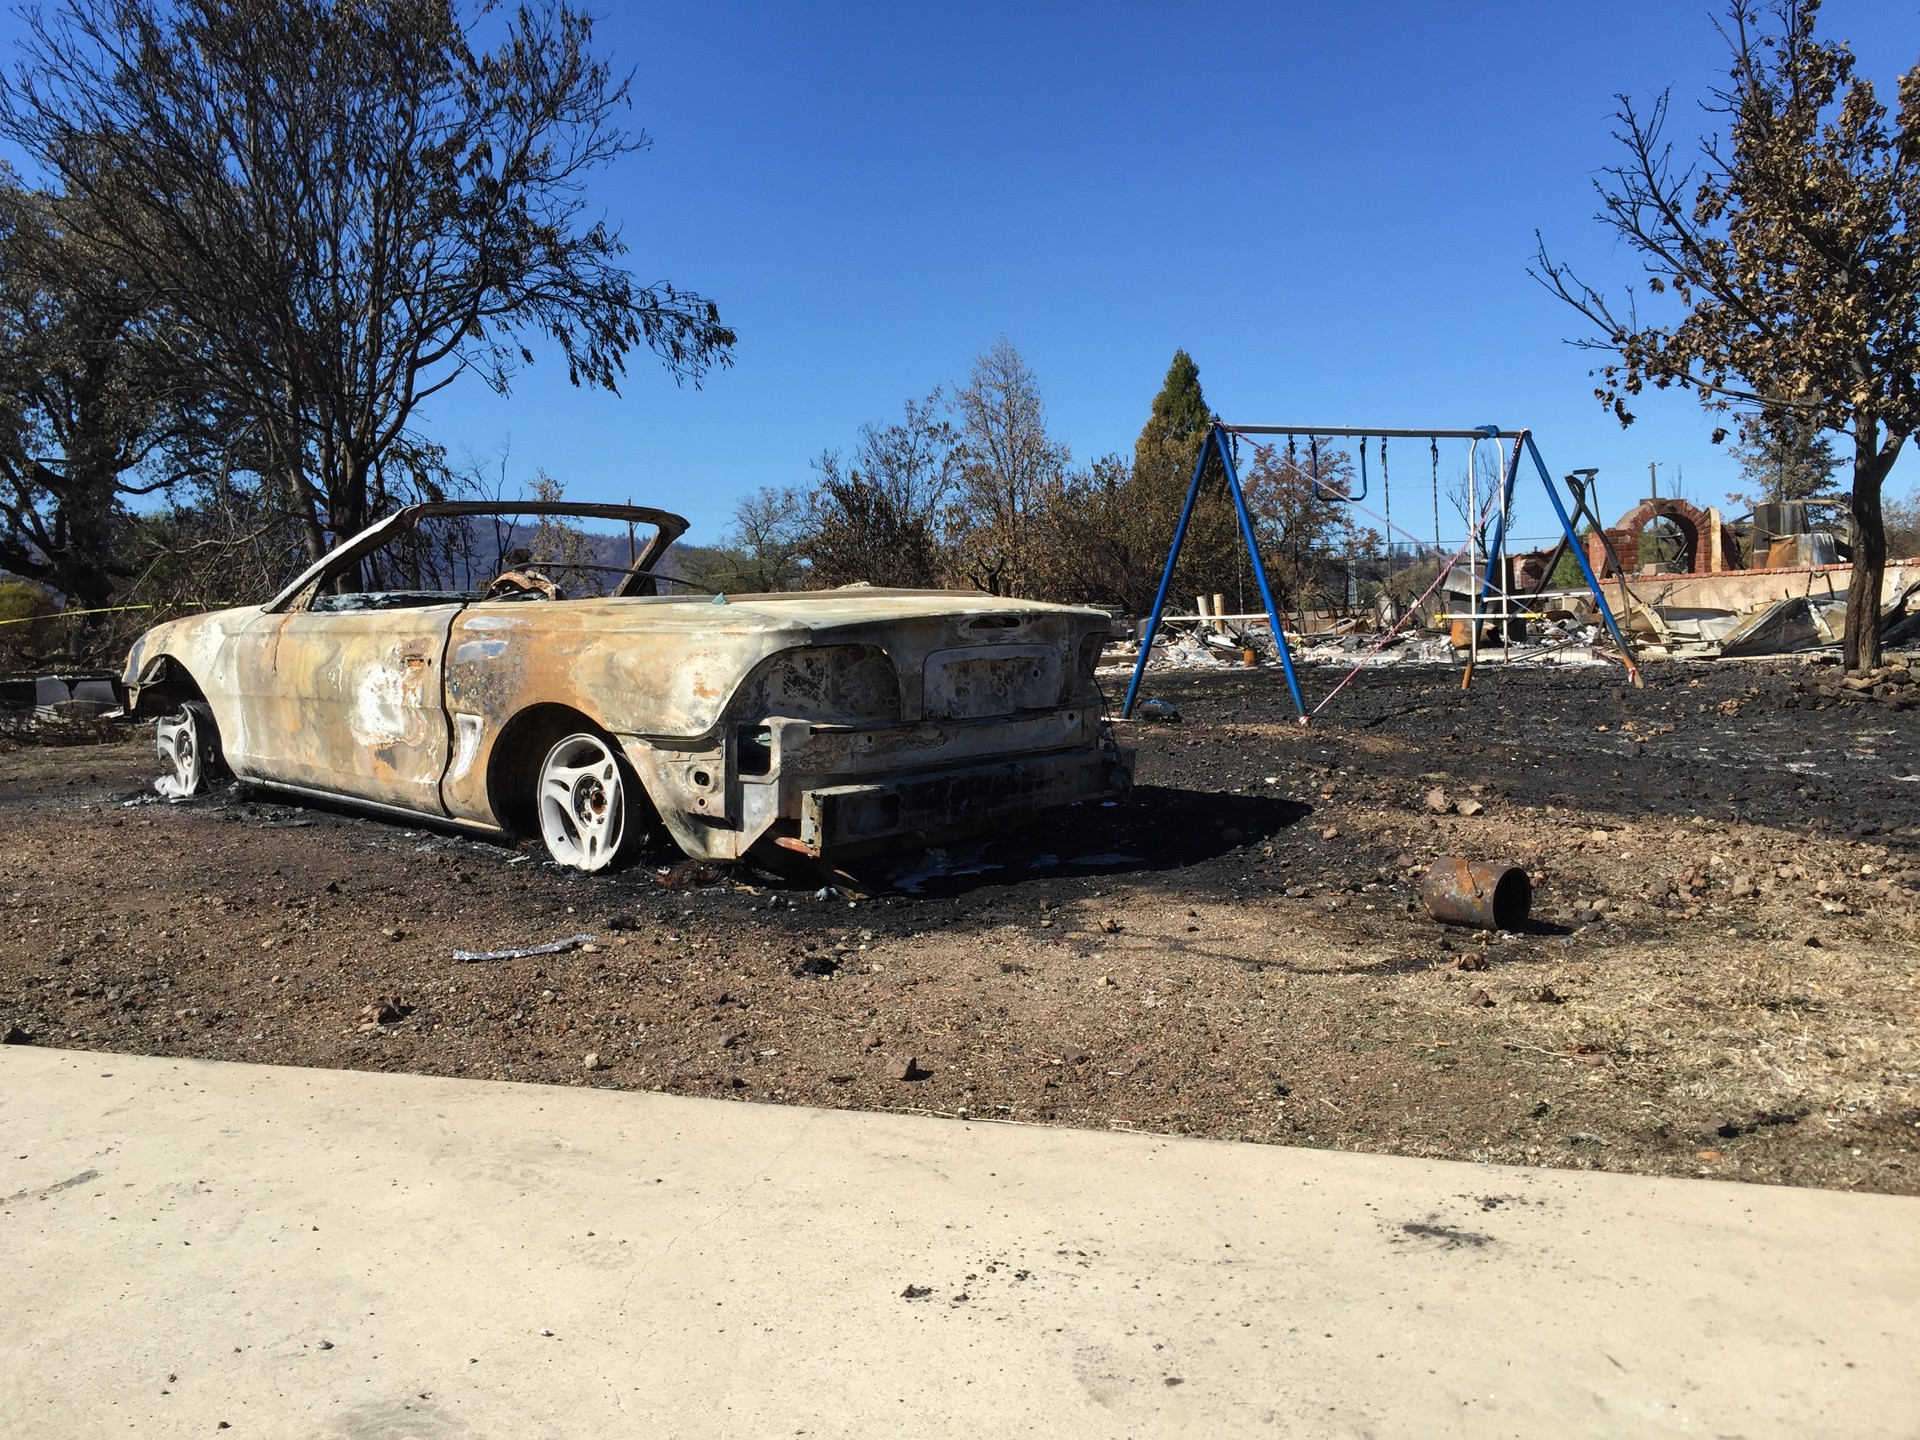 A burned car sits near a swing set in Middletown on Sept. 19, when residents of the community hit hard by the Valley Fire were allowed to return and check their properties.